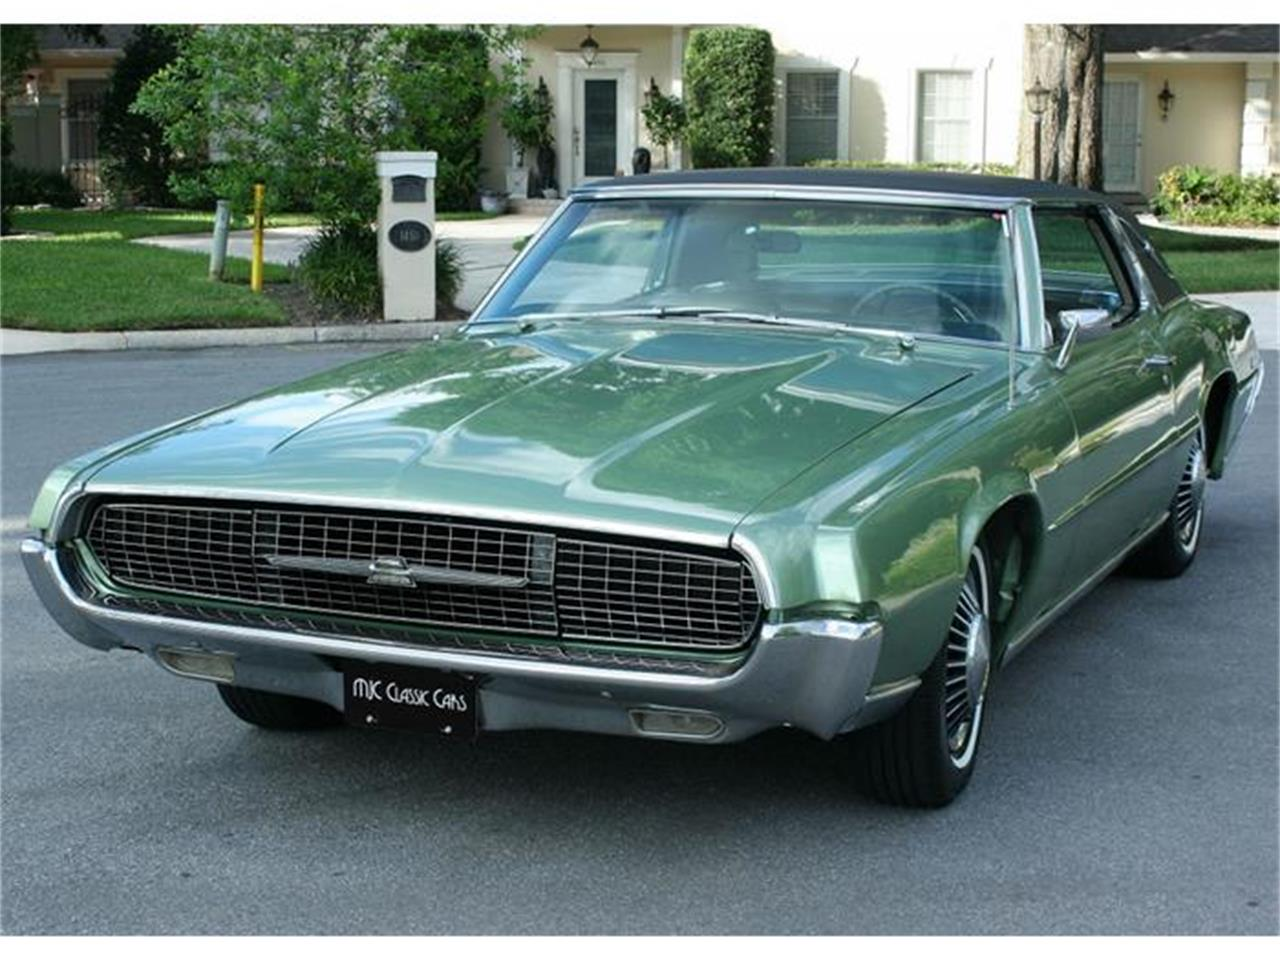 Large Picture of '67 Thunderbird located in Florida - $18,500.00 Offered by MJC Classic Cars - ITN1